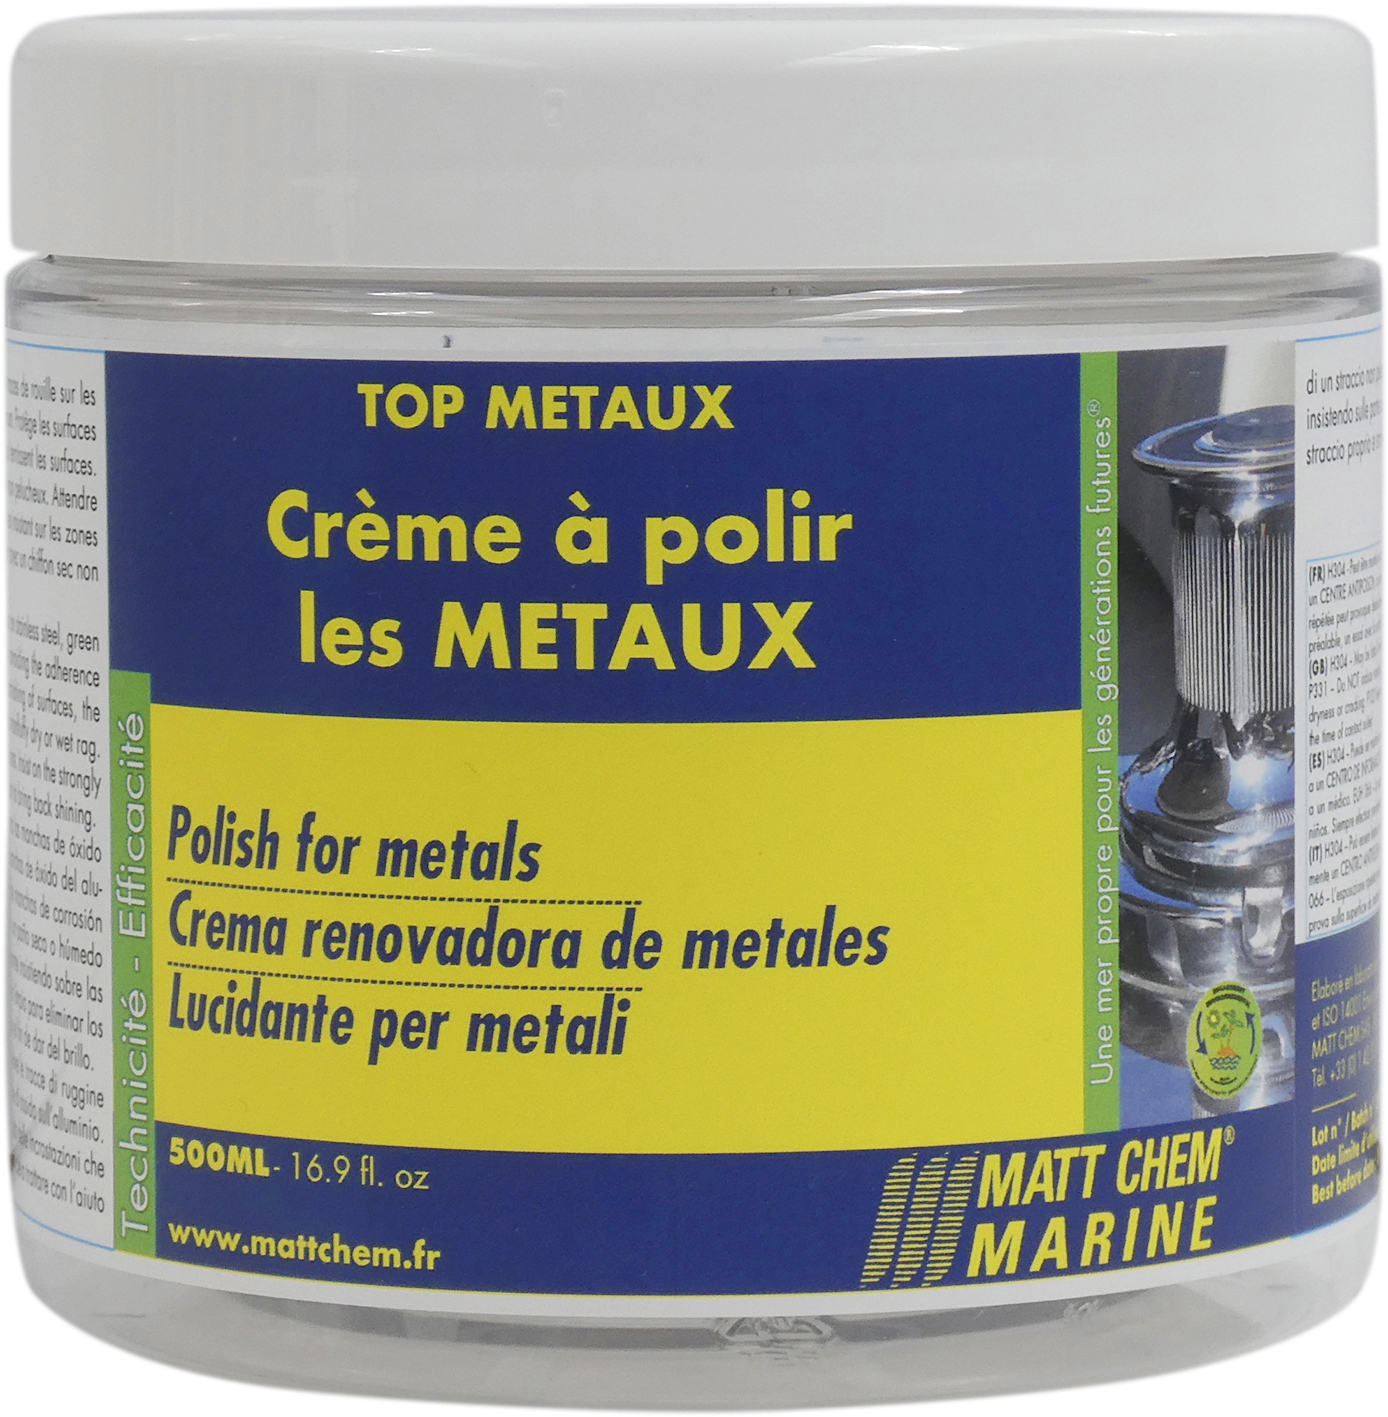 Stainless steel cleaner and rust remover Top Metaux